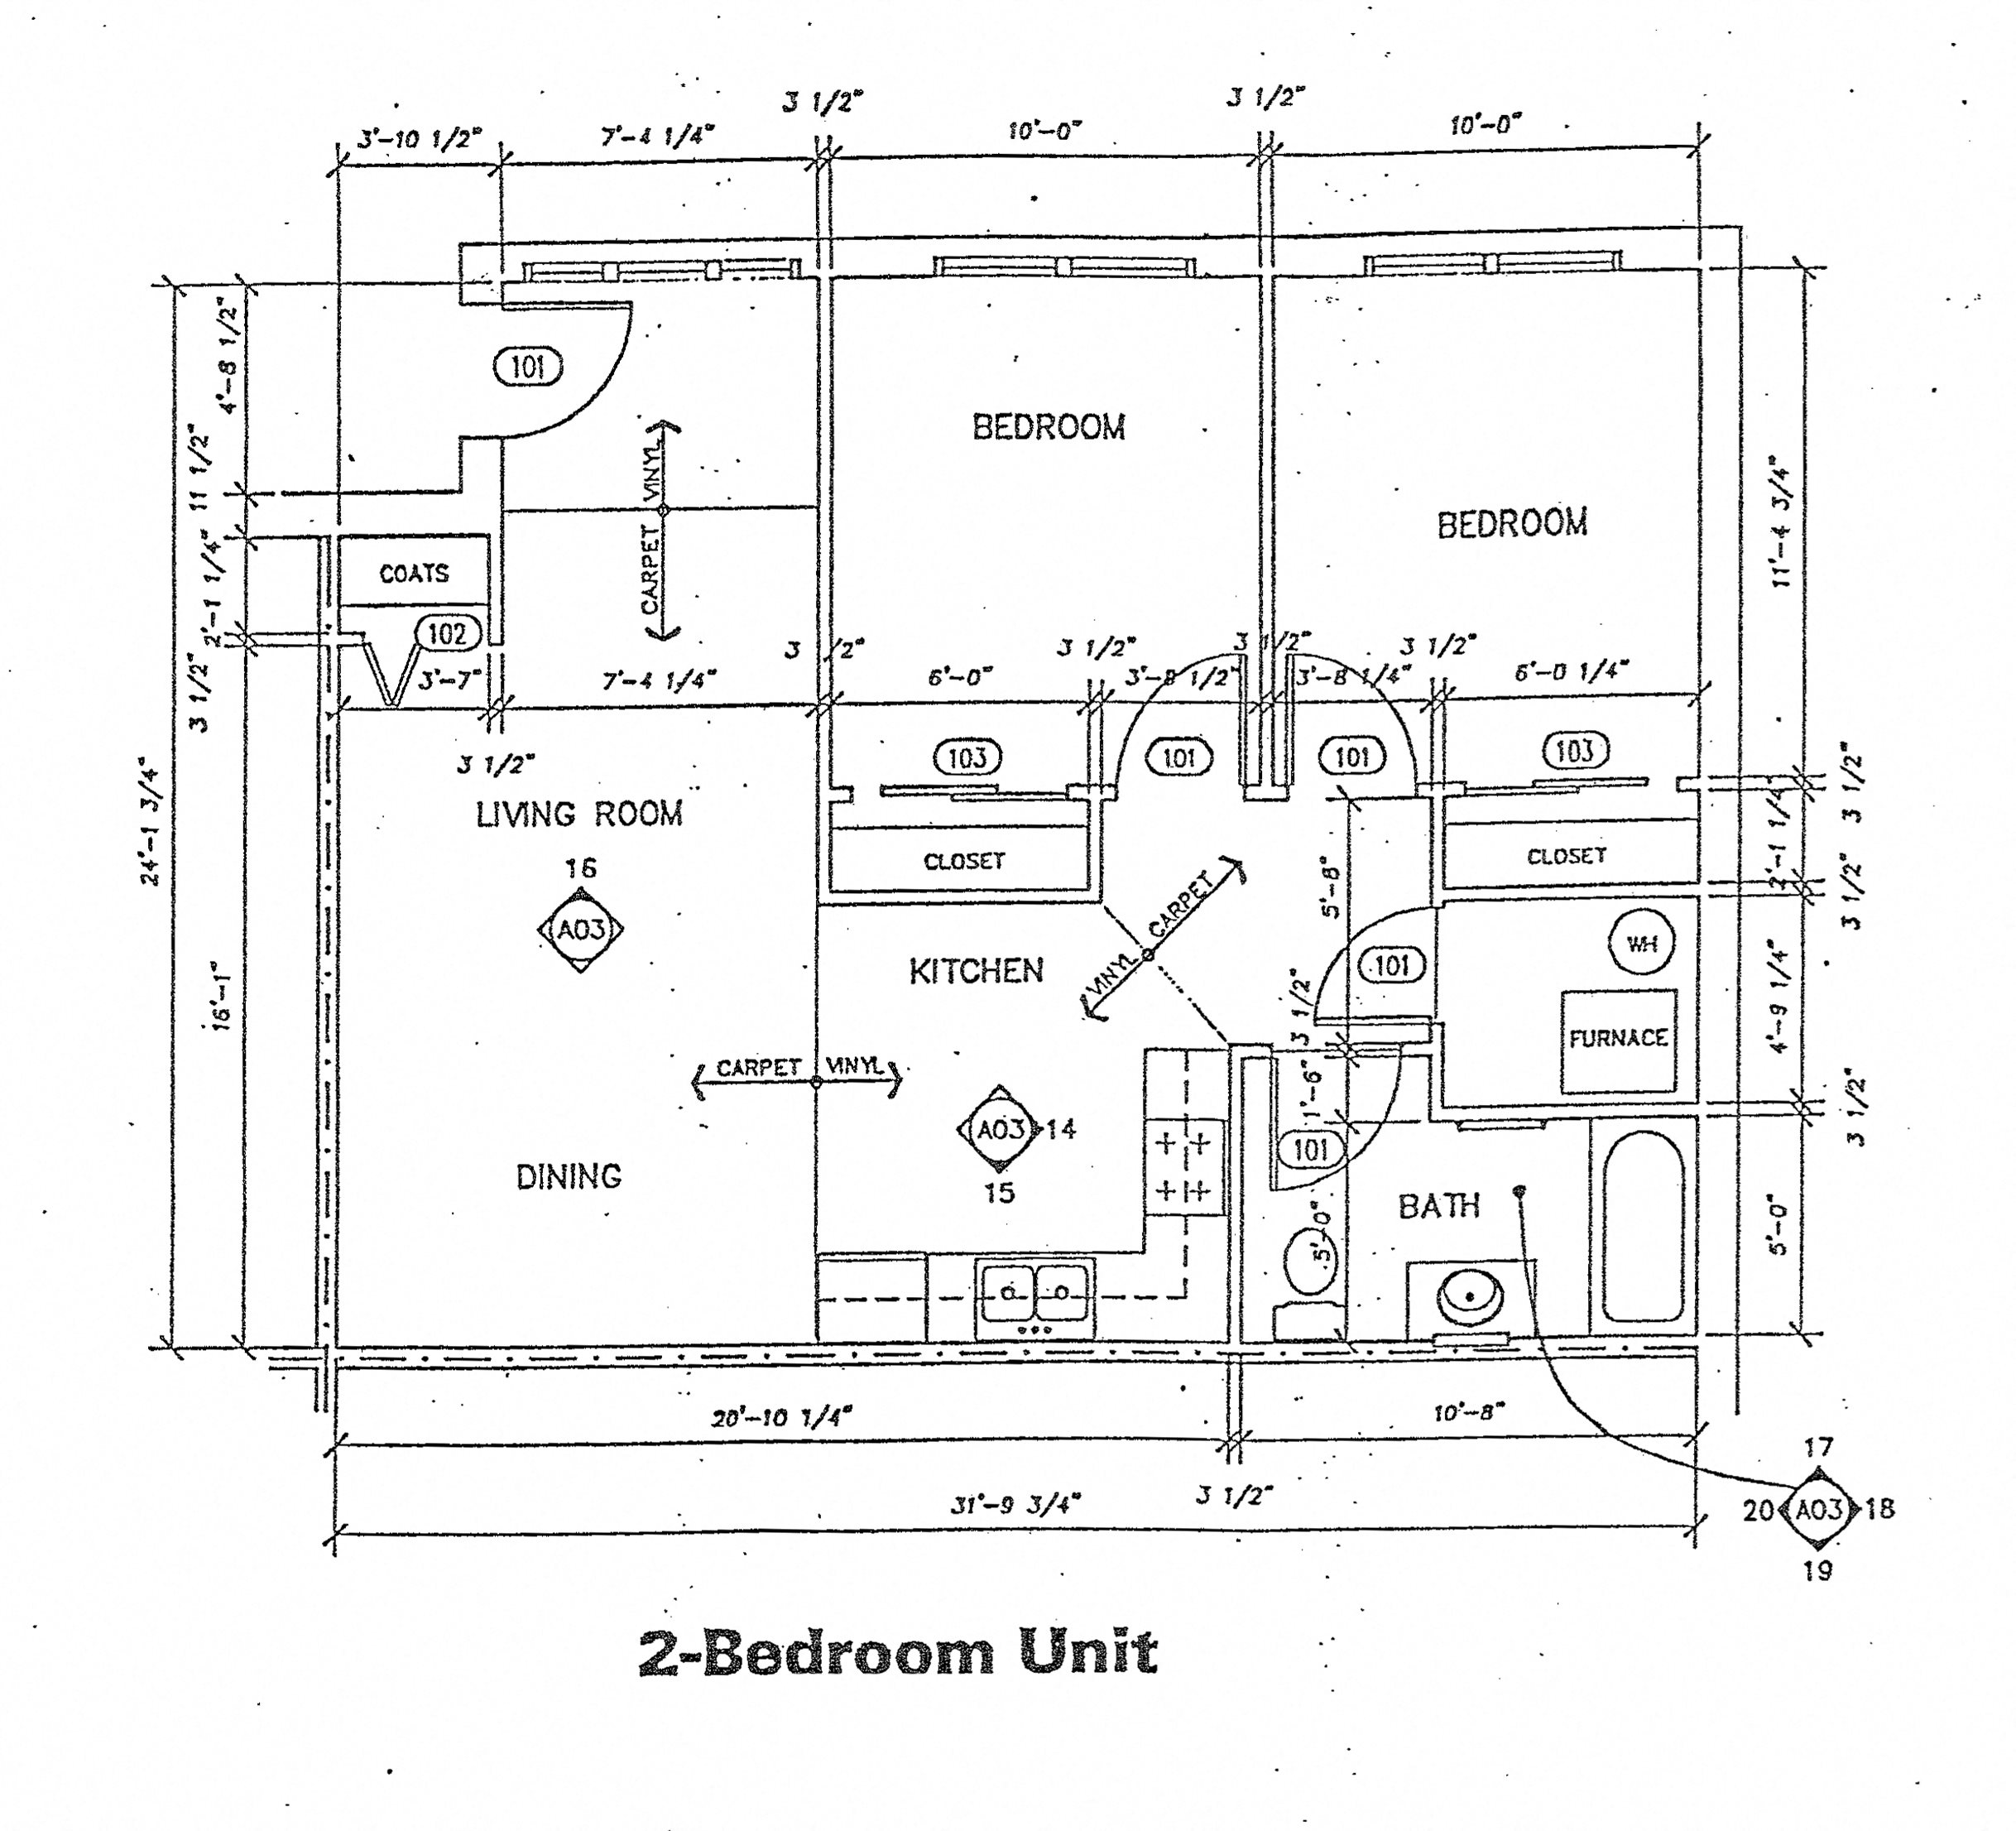 2 Bedroom Floor Plan 1